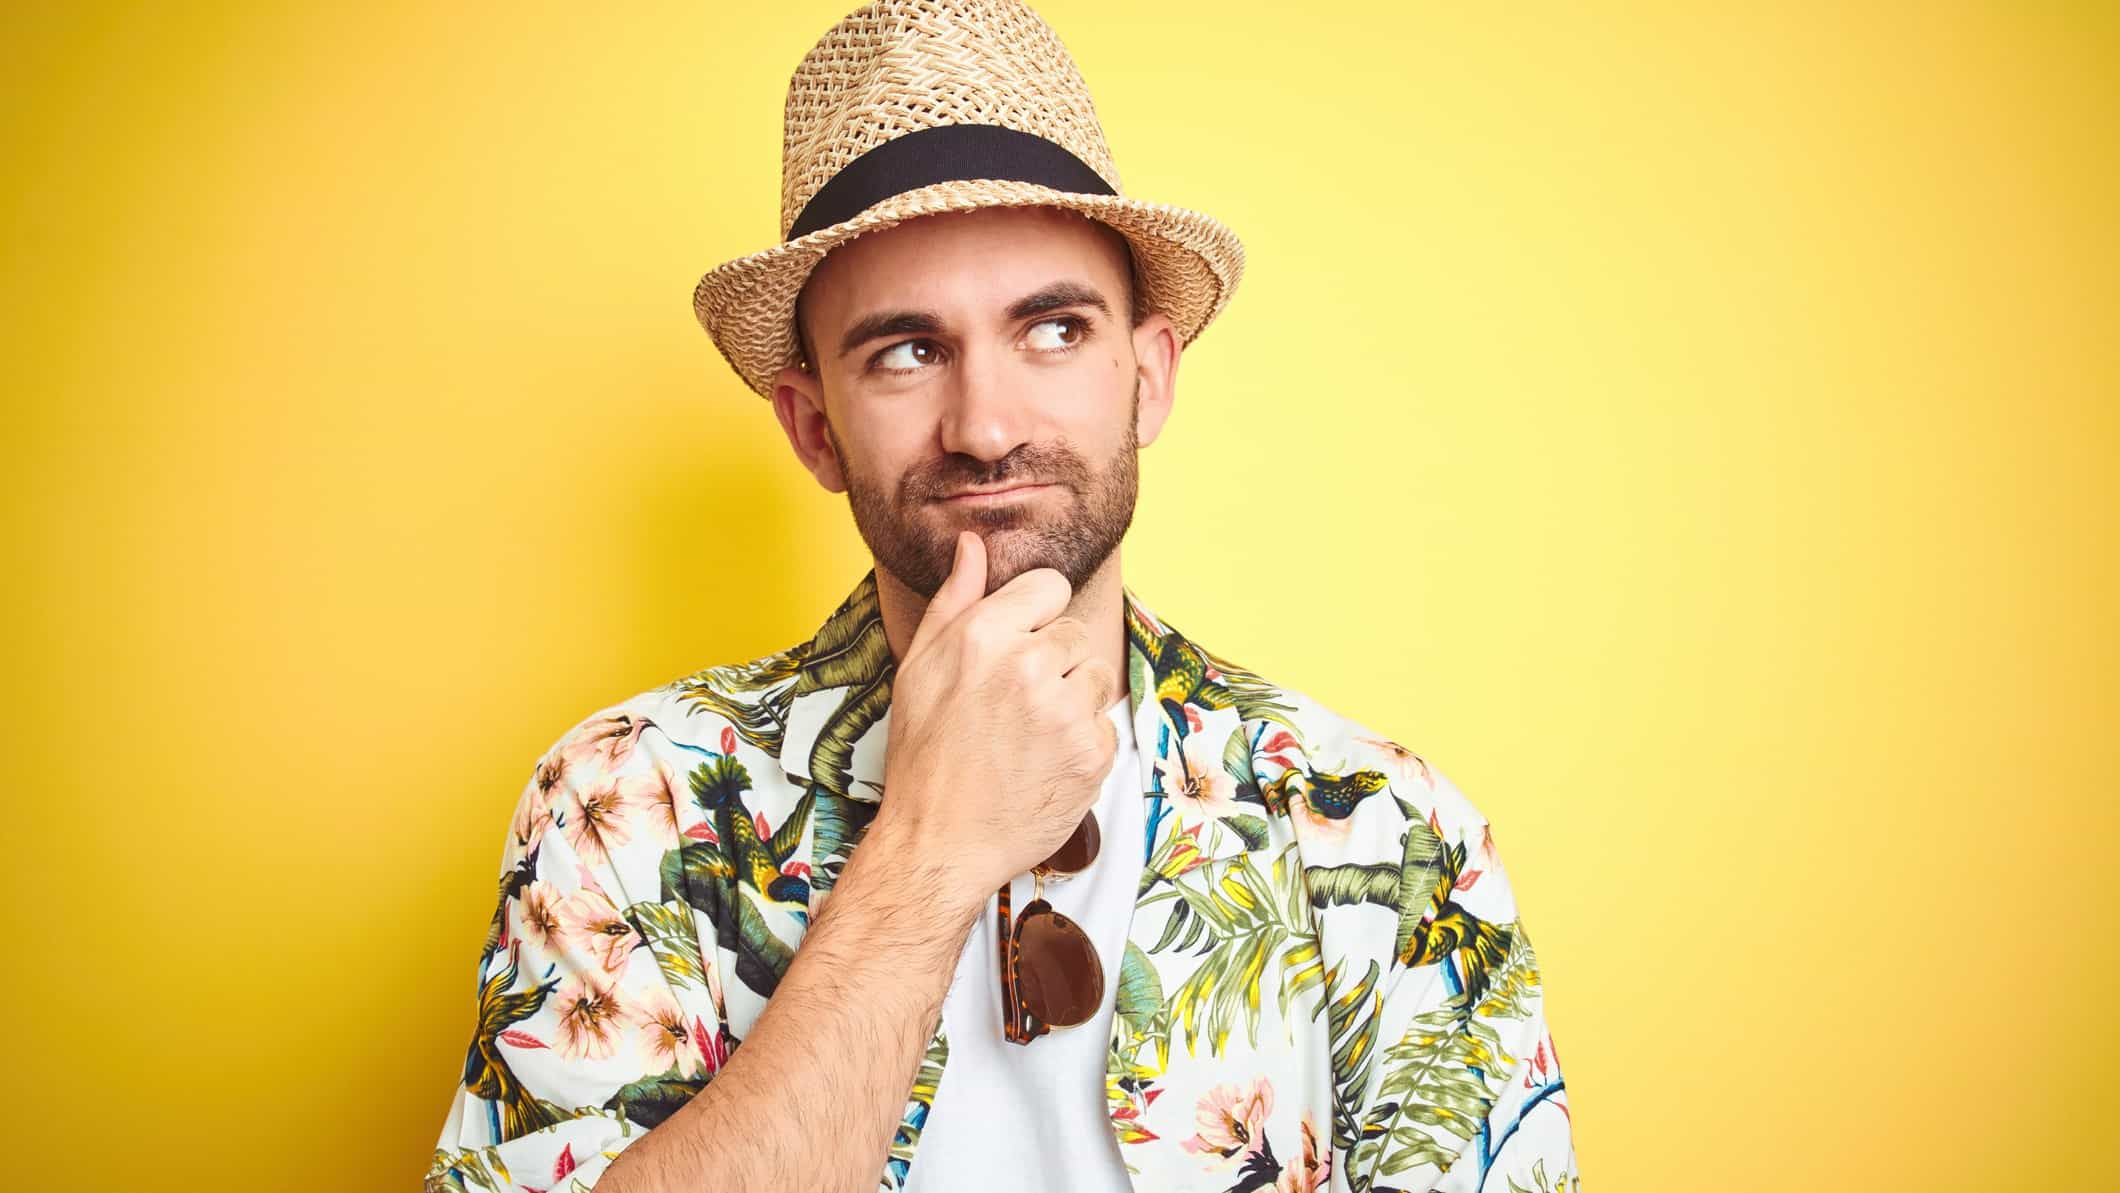 A traveller dressed in colourful shirt and panama hat looking puzzled, indicating uncertainty in the travel share price